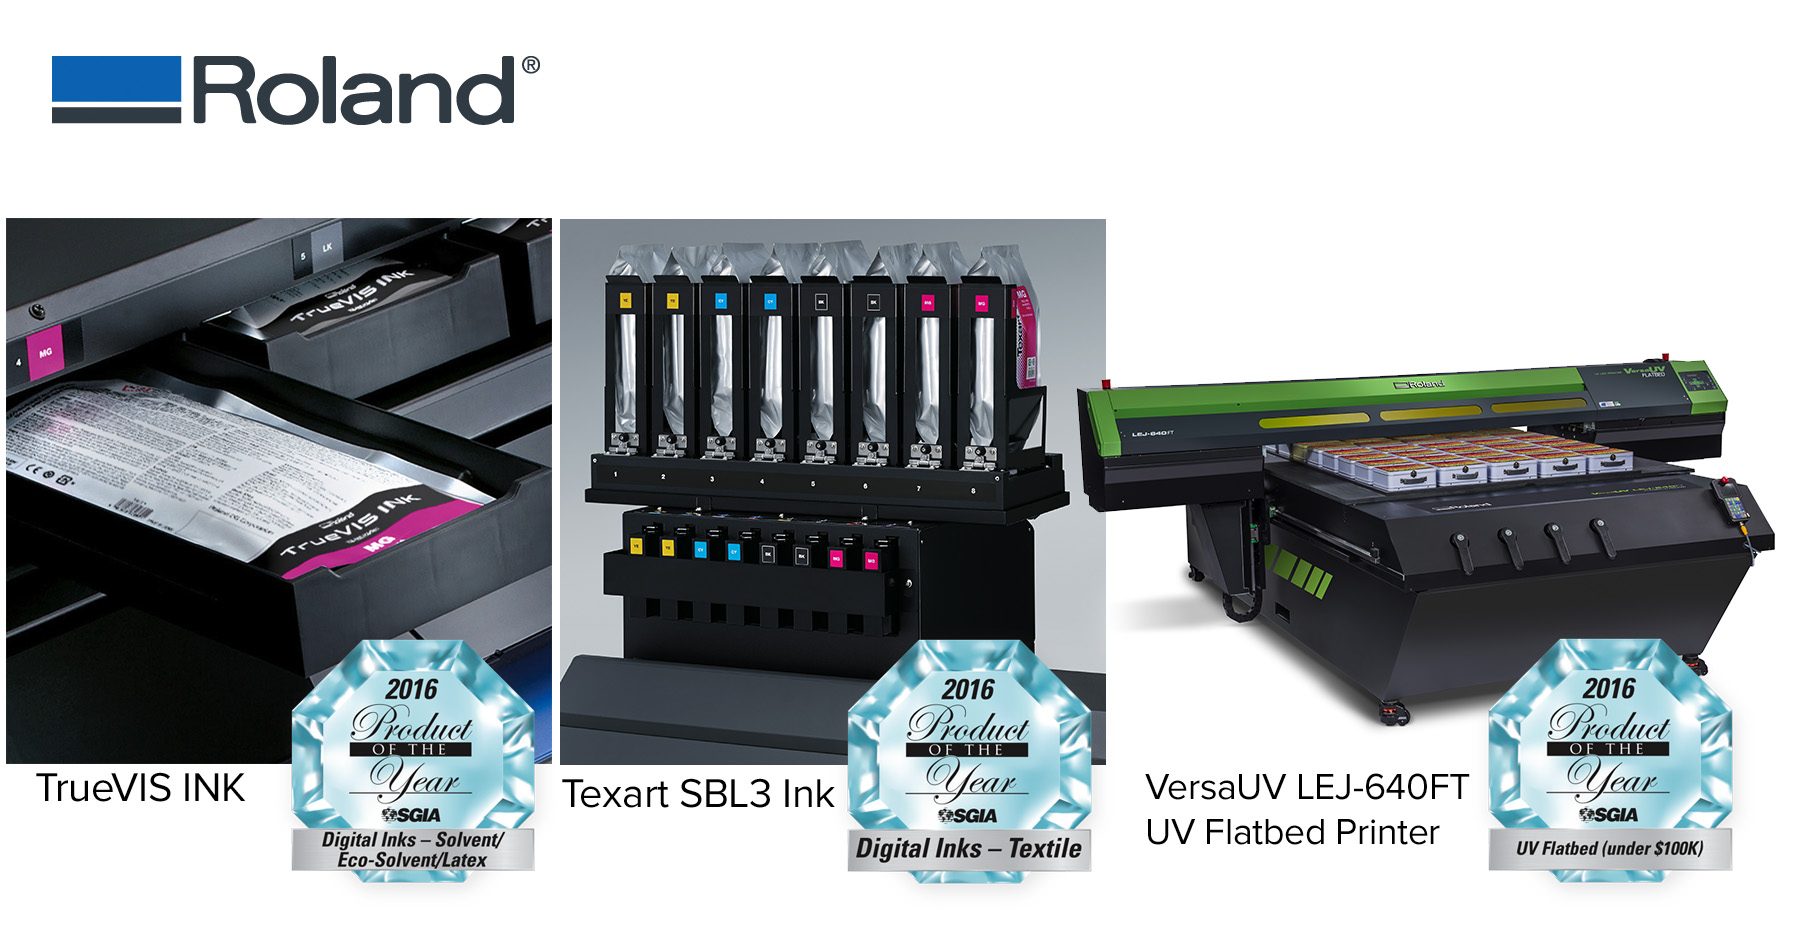 Roland SGIA 2016 Product of the Year award-winning products